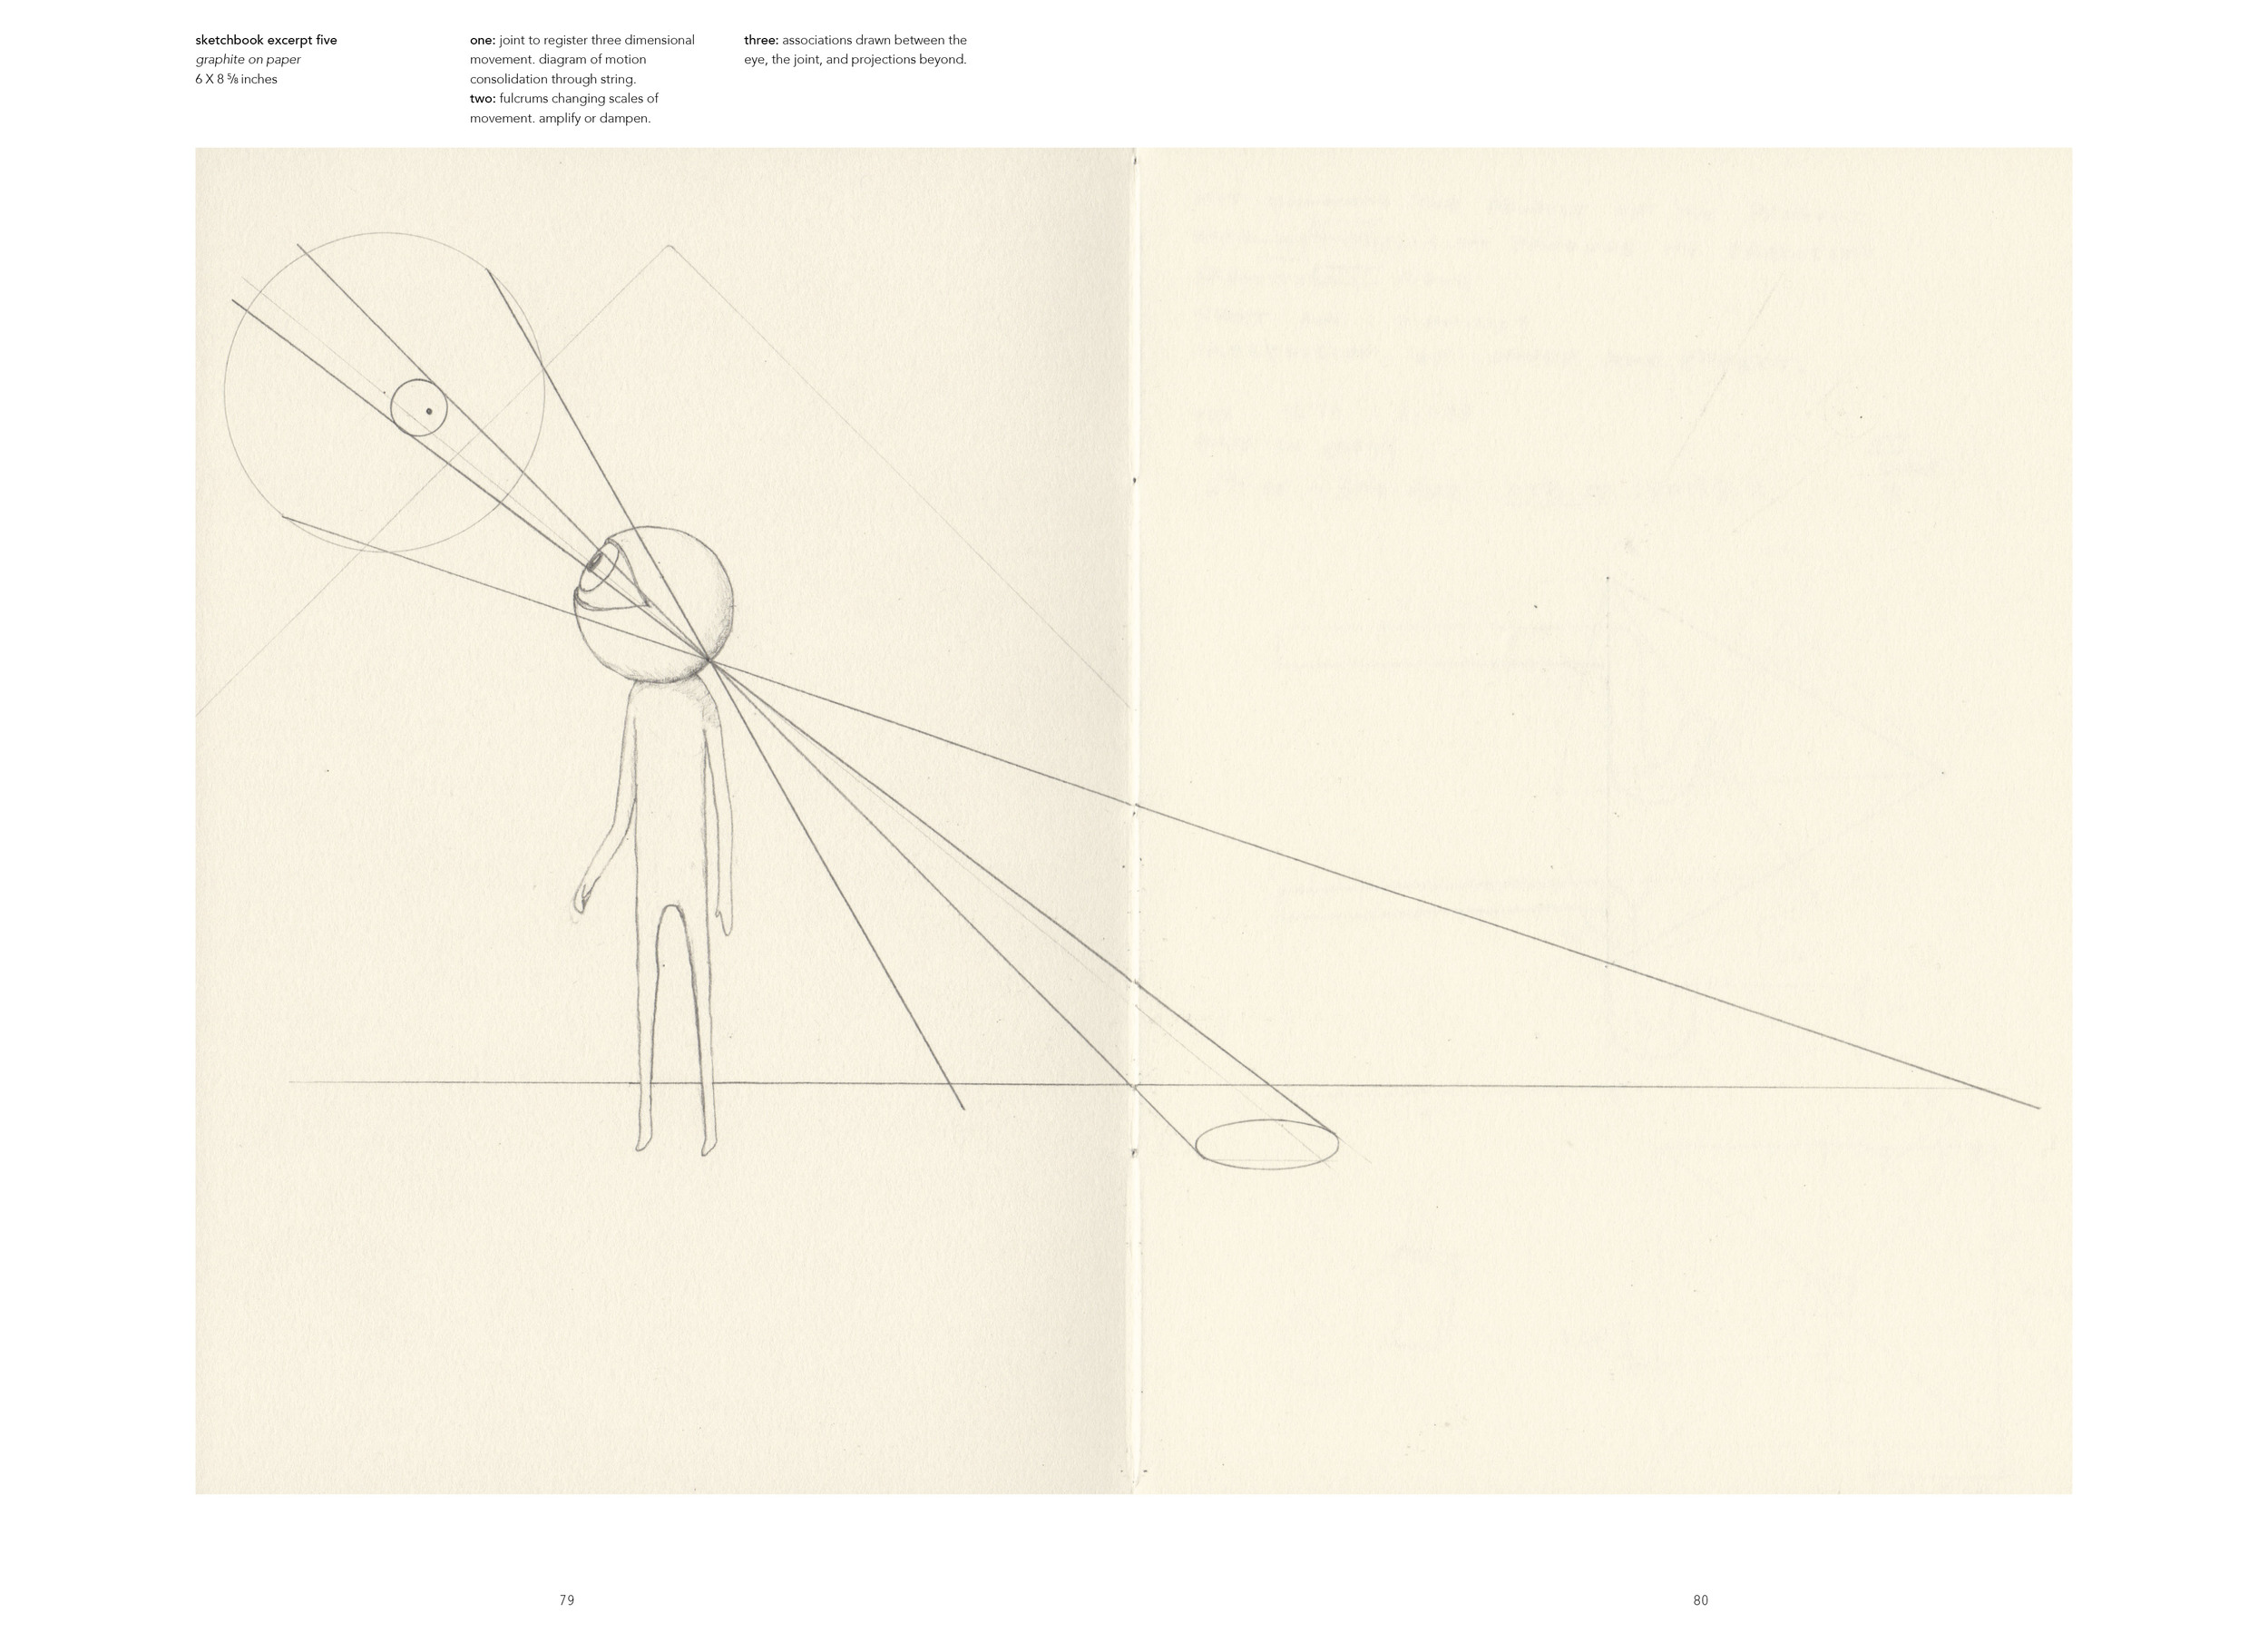 Prosthesis - RISD MArch Thesis - Burgess Voshell46.jpg